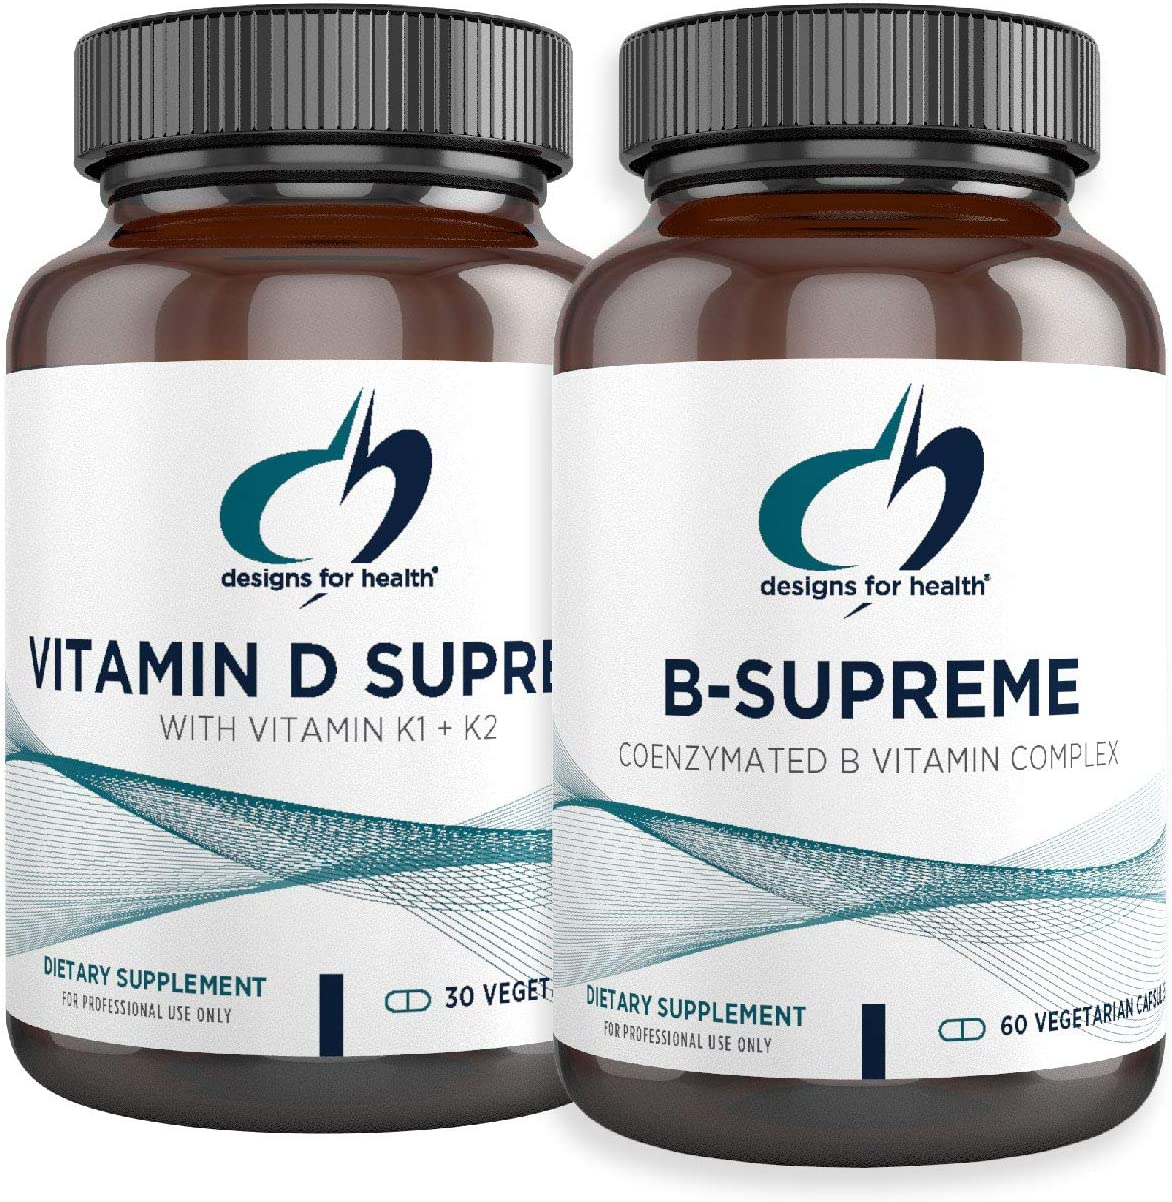 Designs for Health Vitamin D Supreme + B-Supreme Essentials Duo - 5000 IU Vitamin D3 + Vitamin K, Active B Complex (2 Product Set)